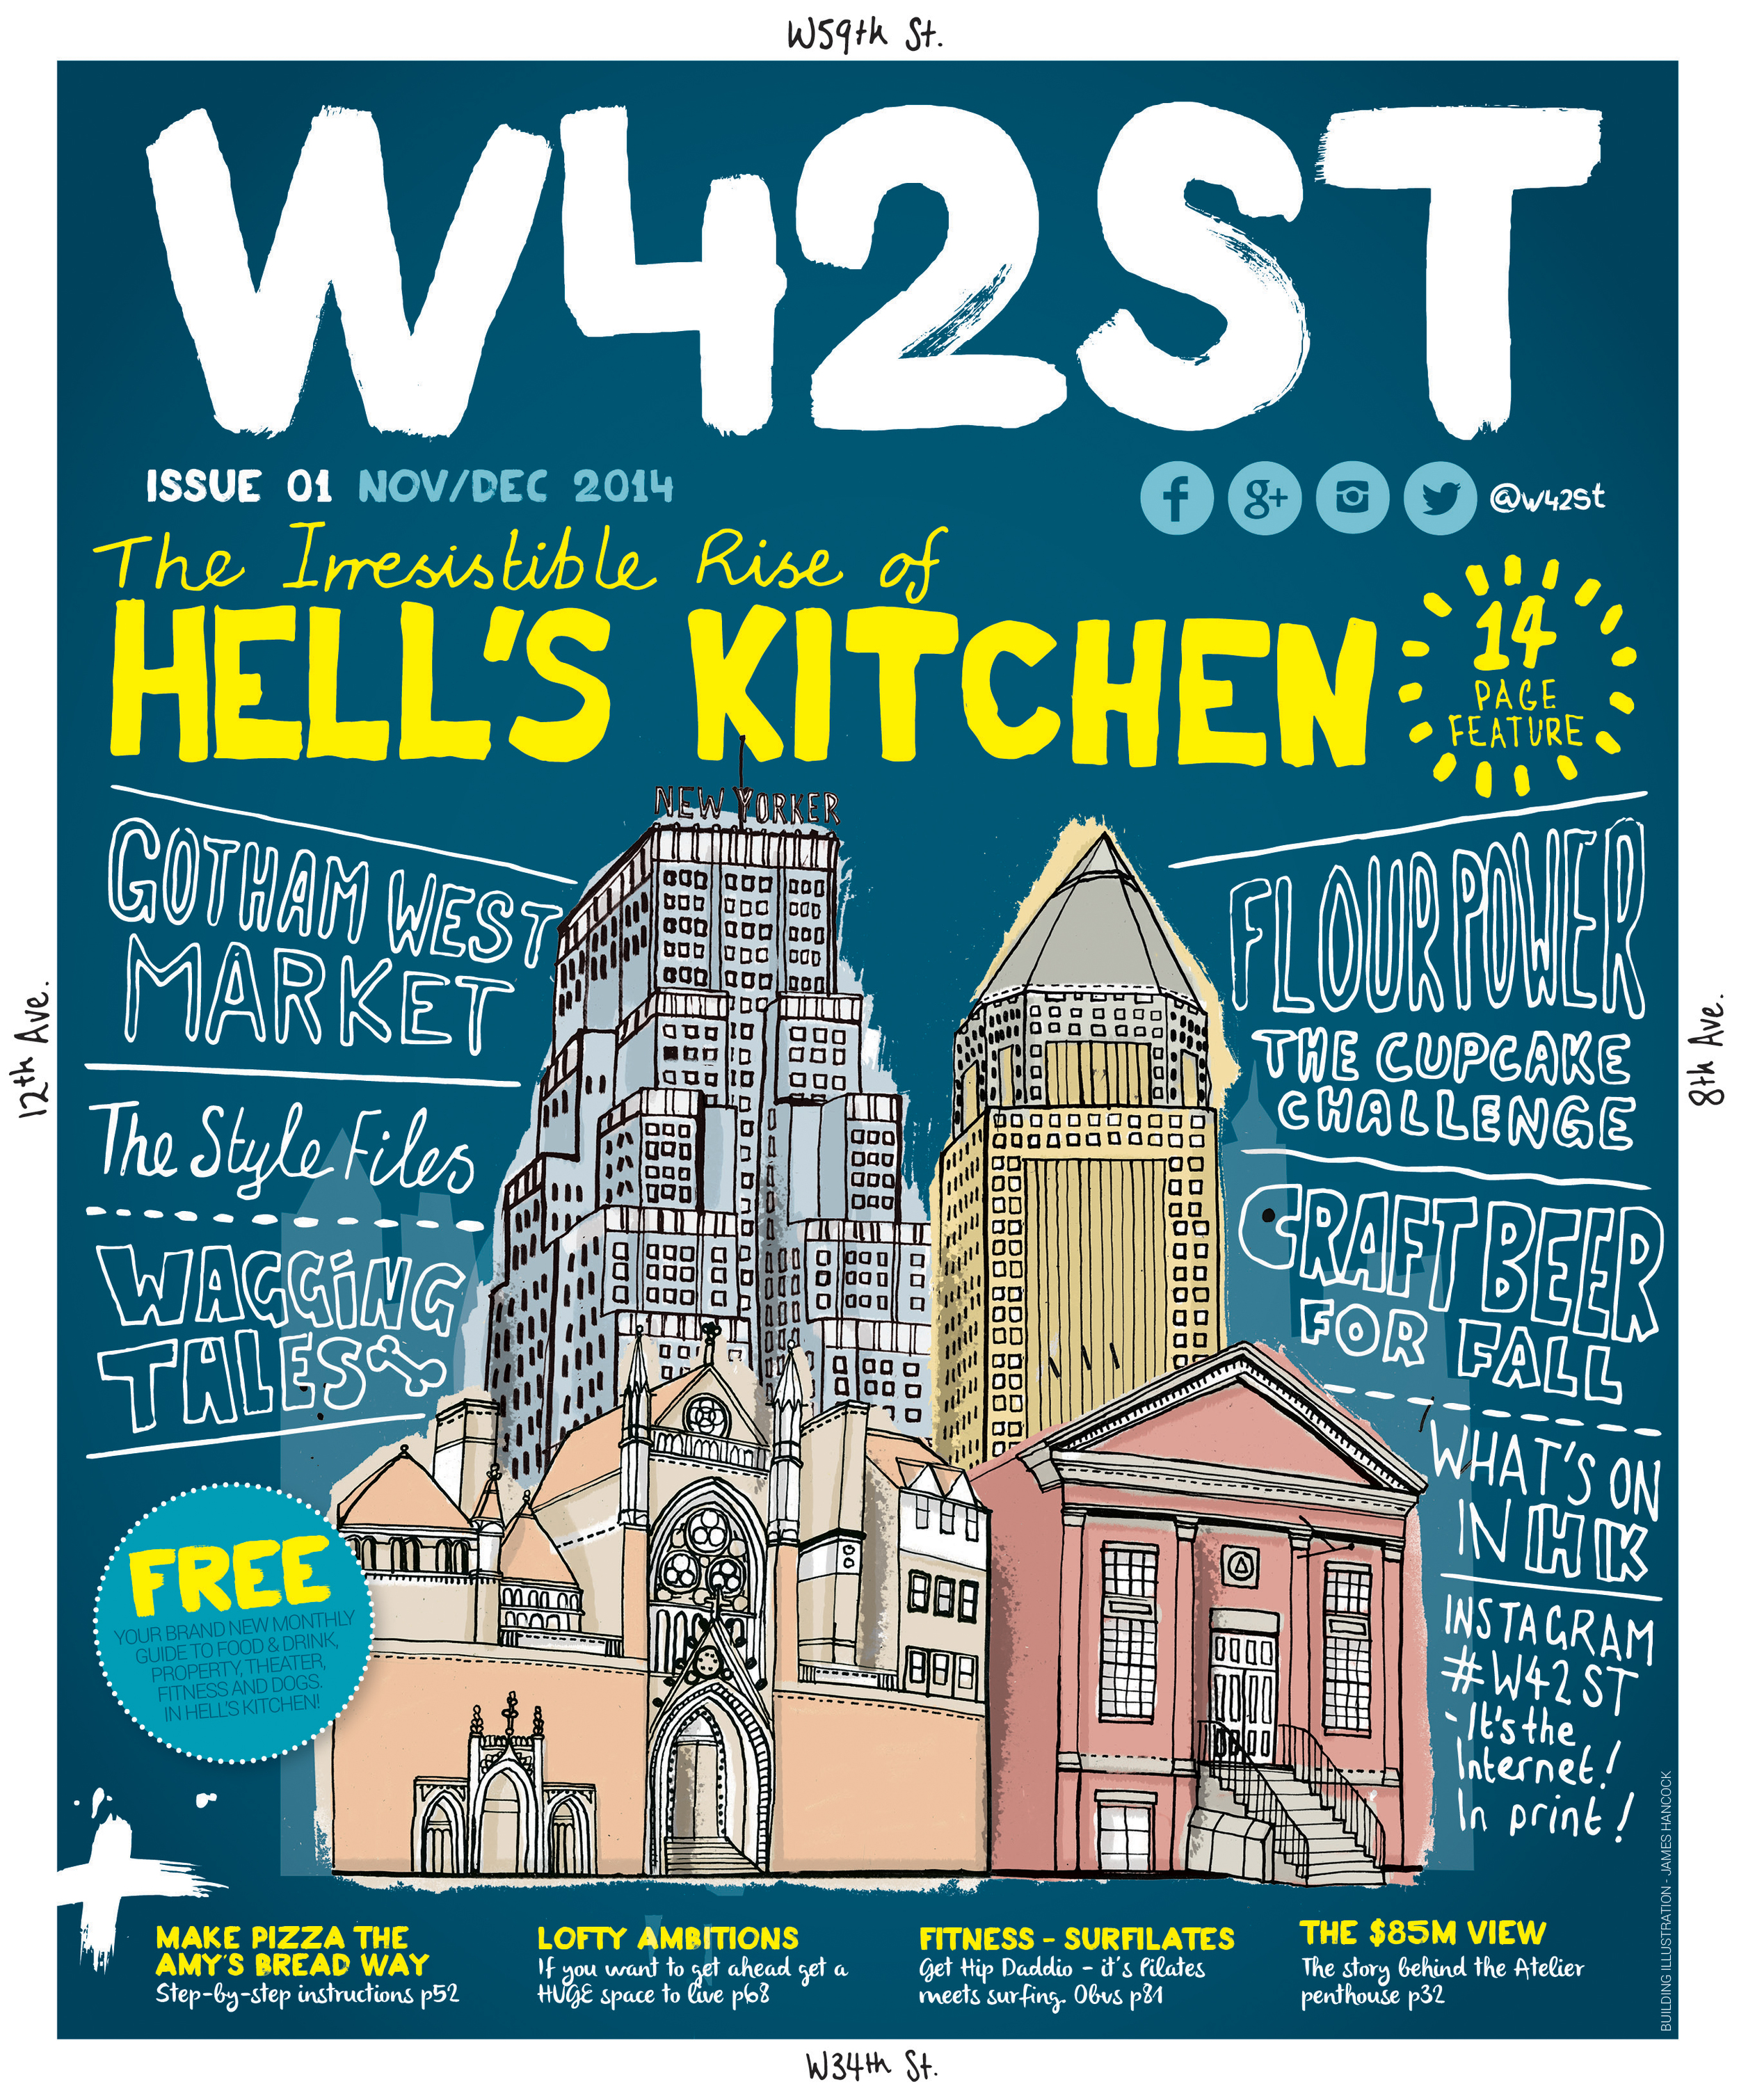 W42ST_Issue1_cover.jpg